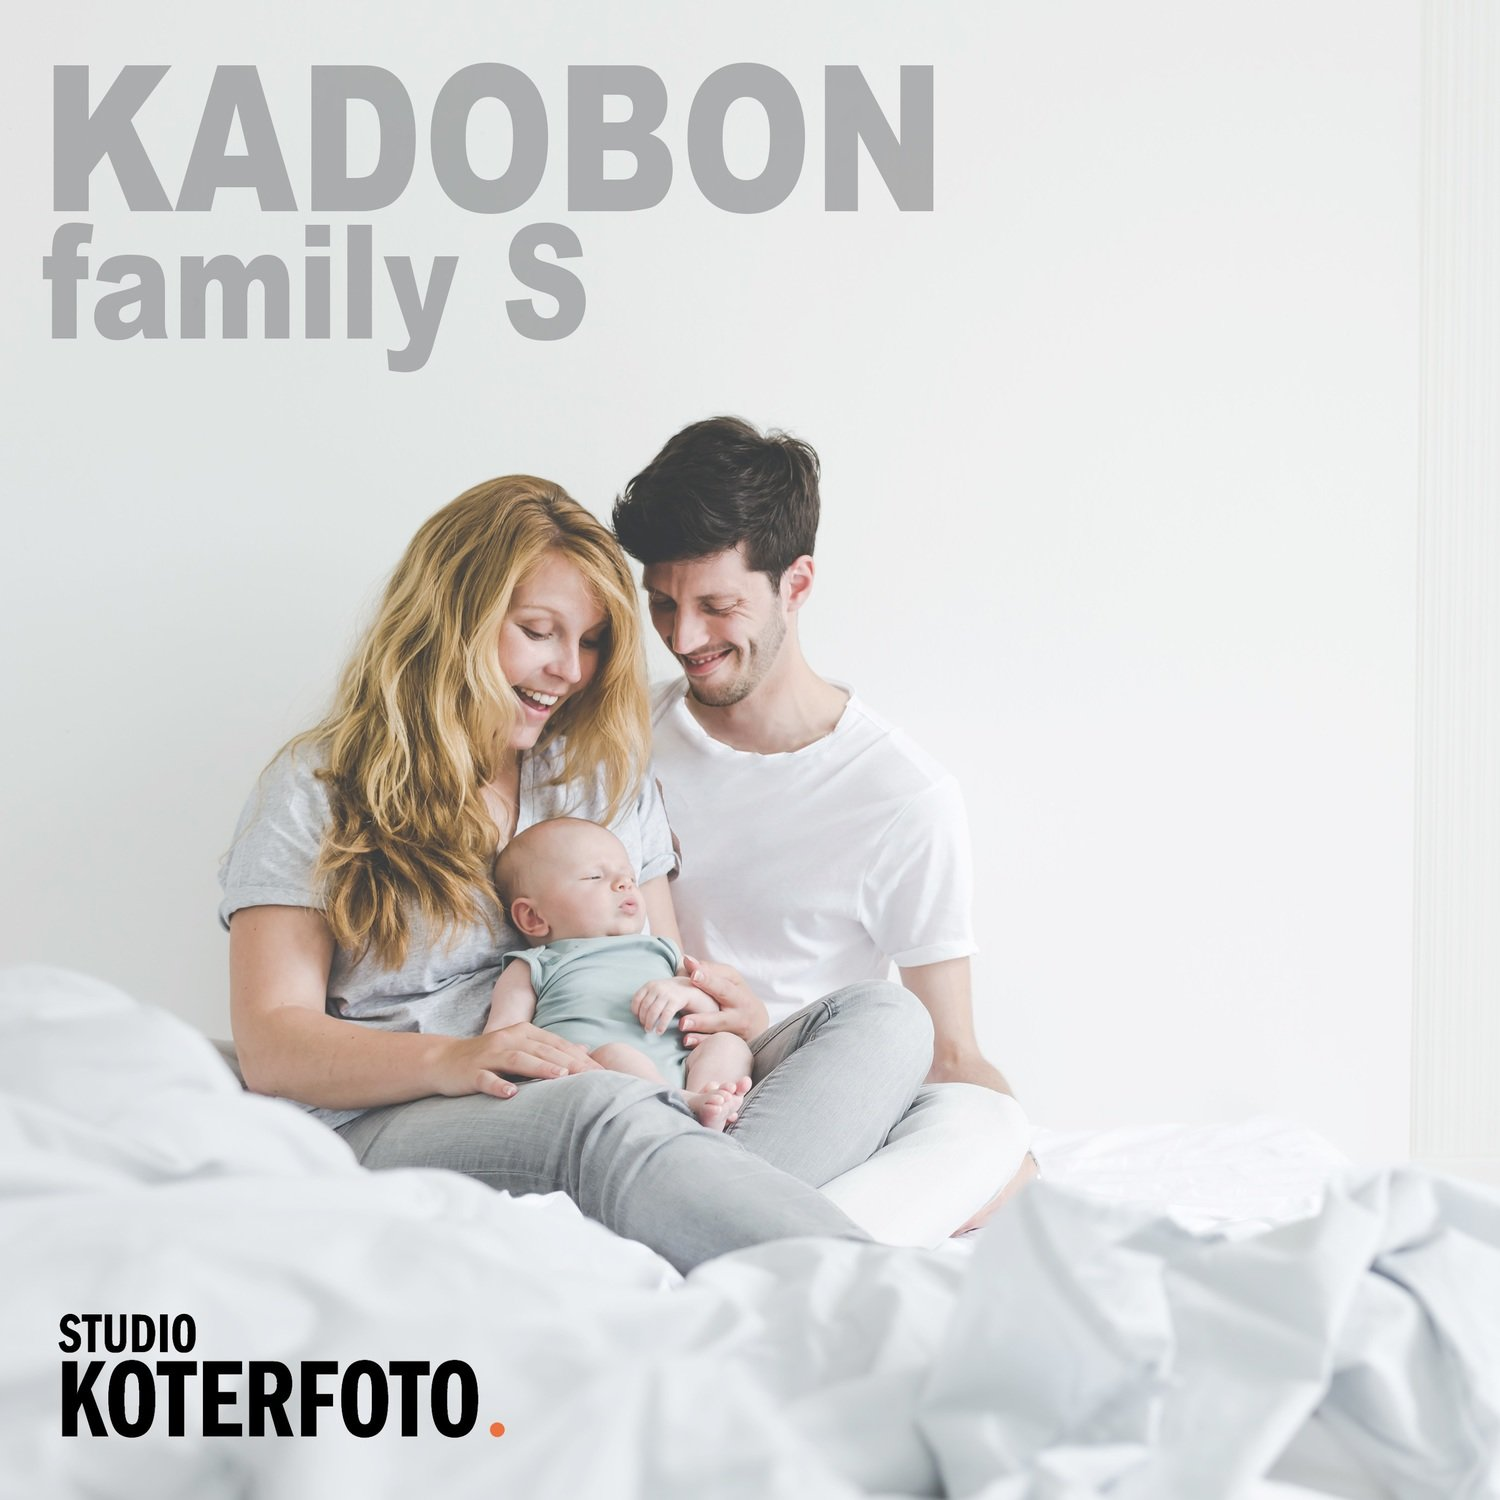 Kadobon fotoshoot family small (3 pers.)